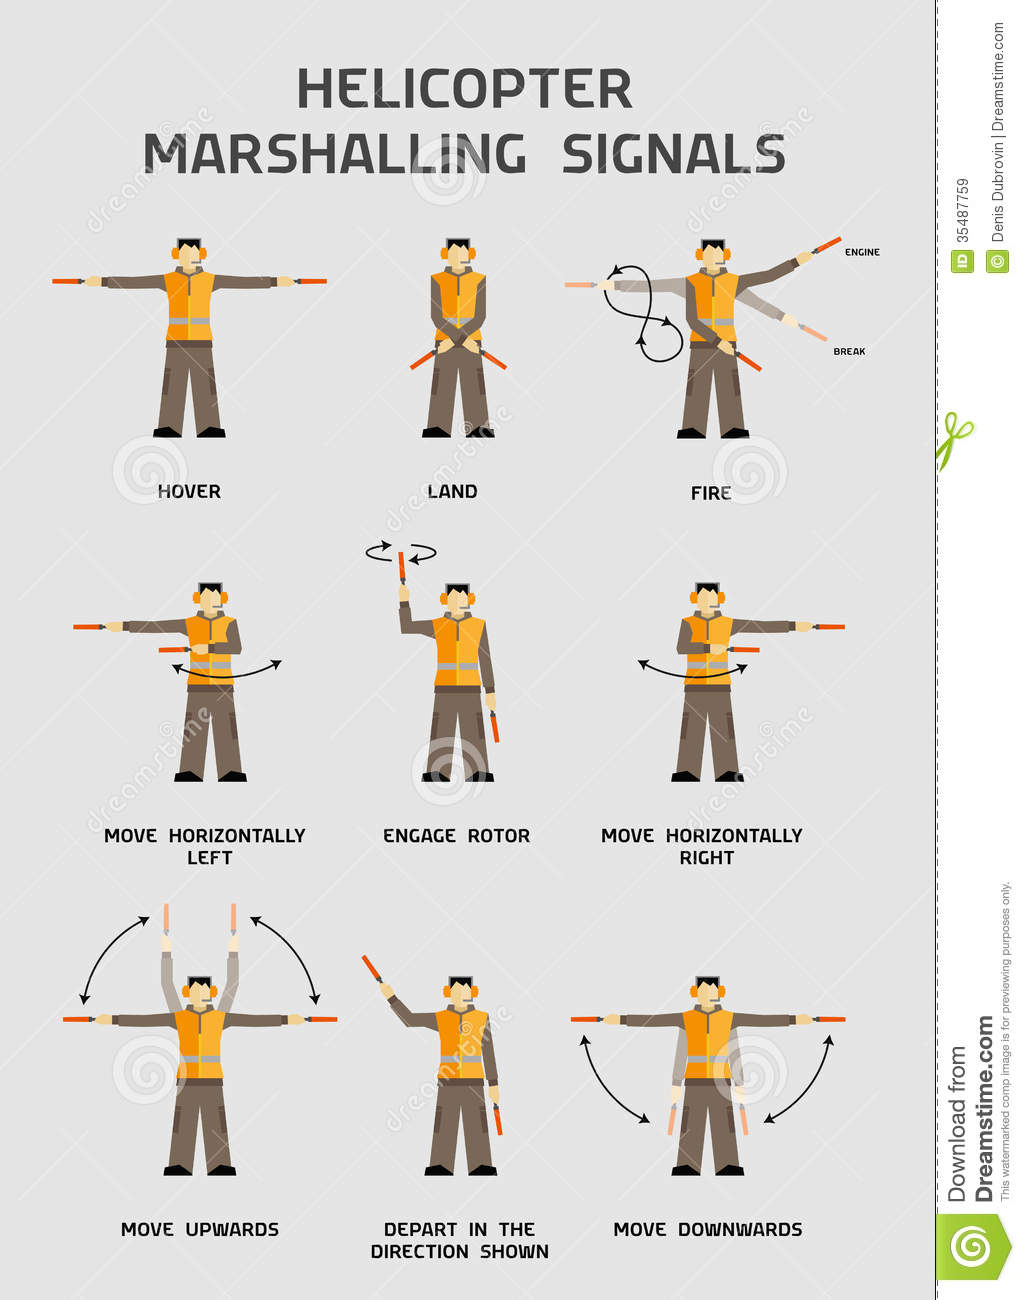 Helicopter Marshalling Signals Royalty Free Stock Images - Image ...